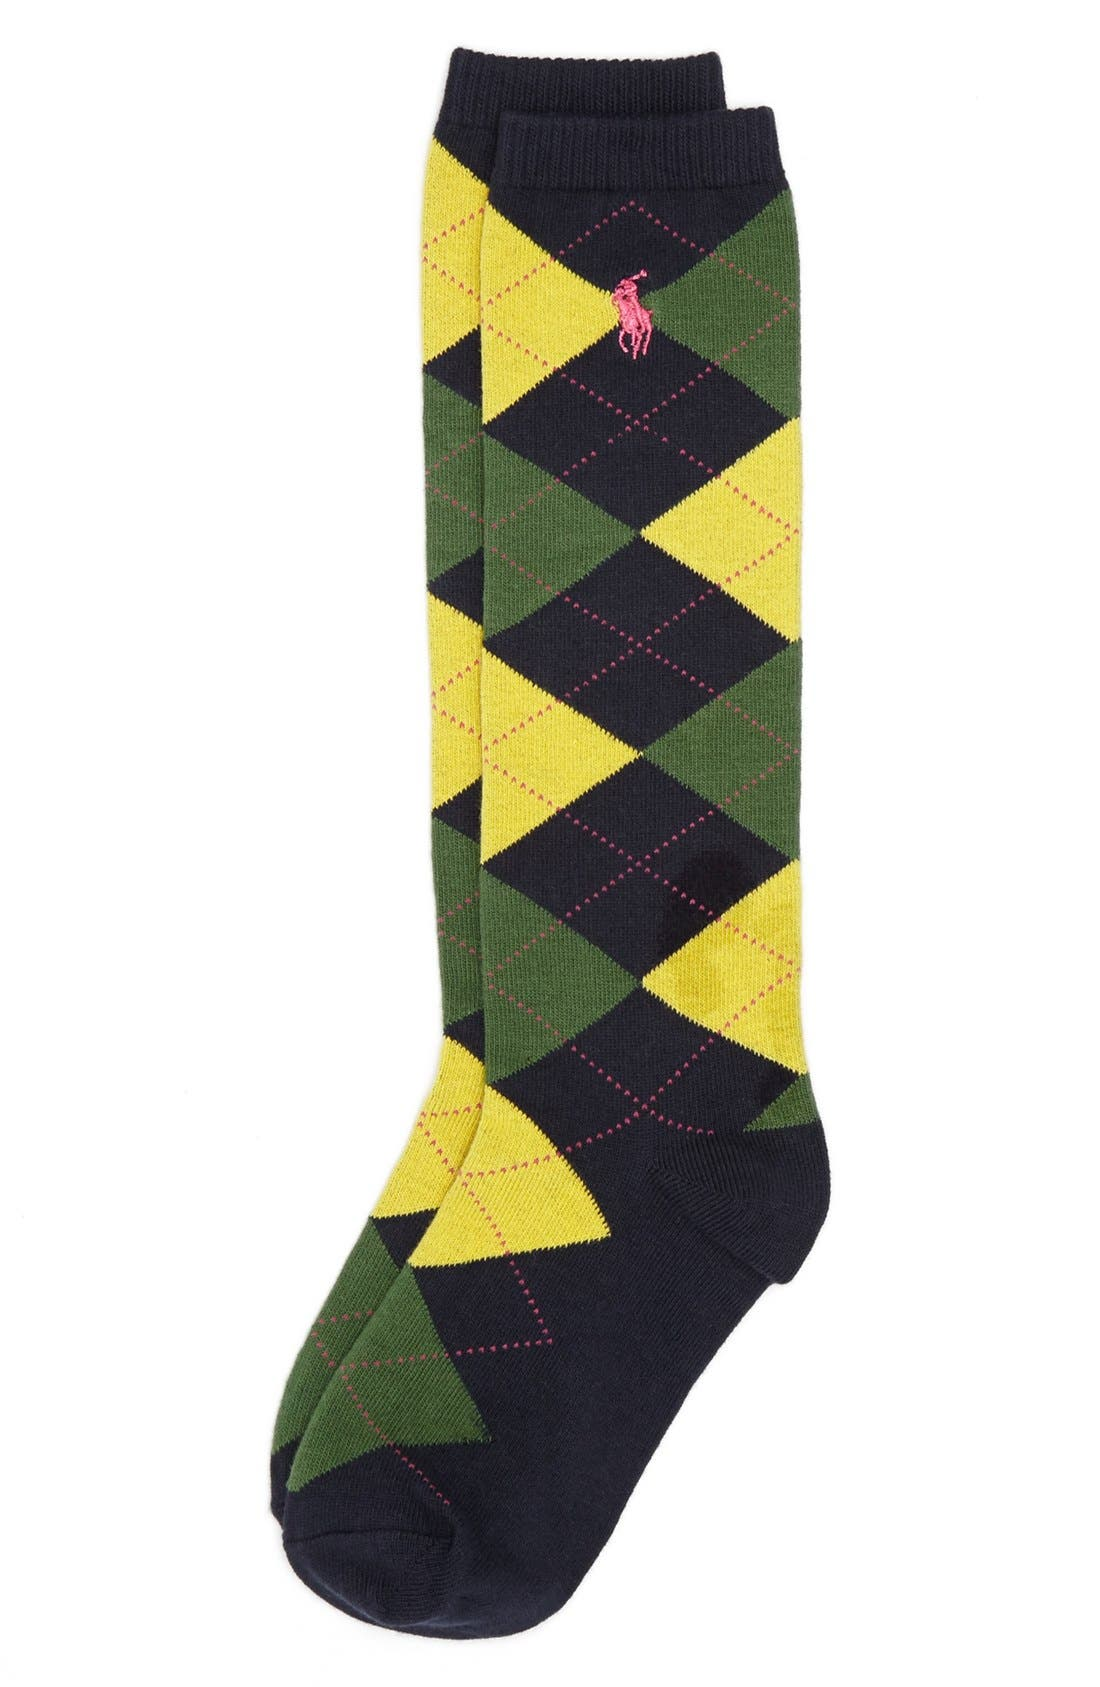 Alternate Image 1 Selected - Polo Ralph Lauren Argyle Knee High Socks (Big Kids)